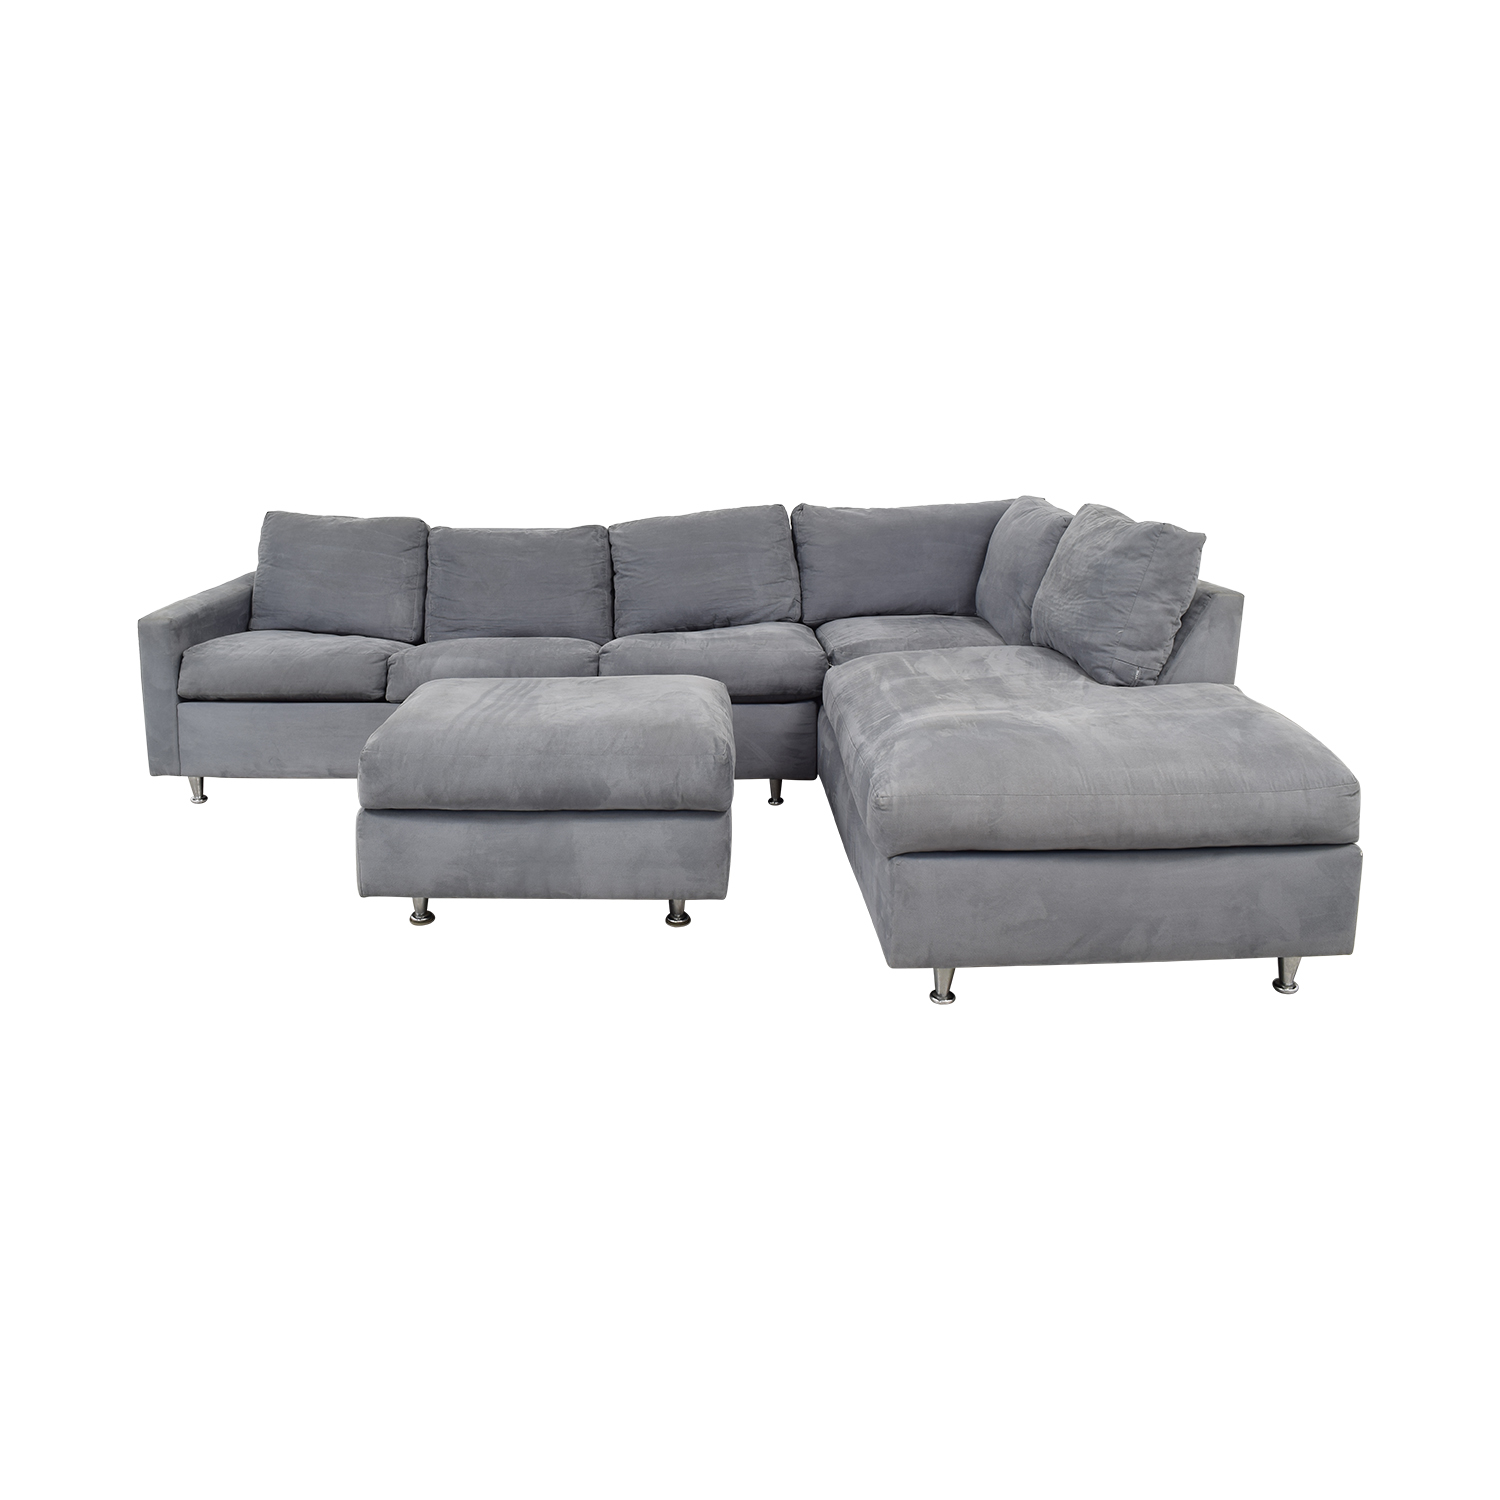 Queen Sofa Bed Ottoman 72 Off Jensen Lewis Jensen Lewis Grey Ultrasuede Chaise Sectional With Ottoman And Queen Convertible Sofas